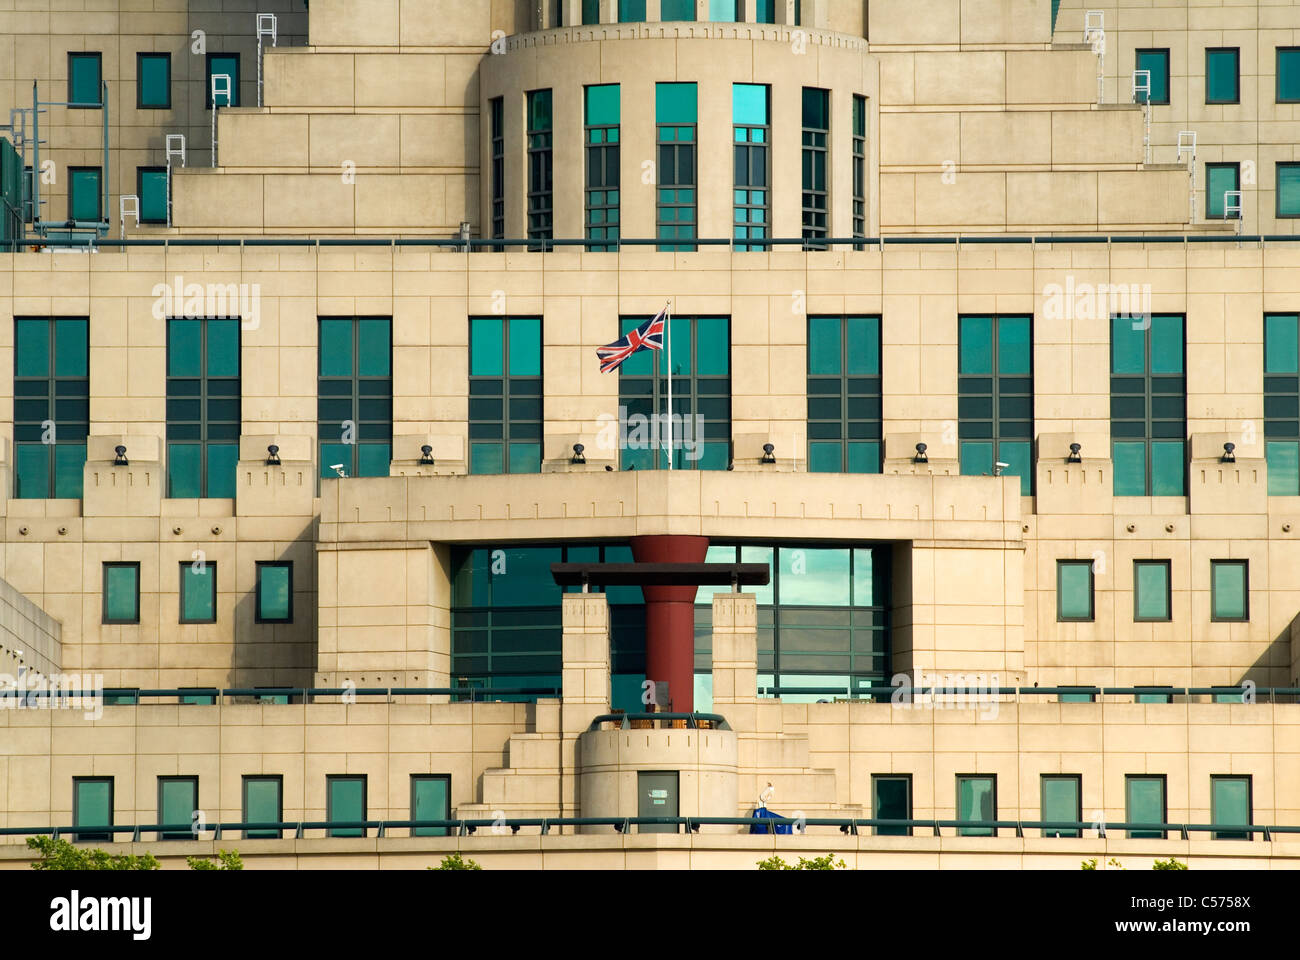 MI6 Building south side of the river Thames London Uk  - Stock Image